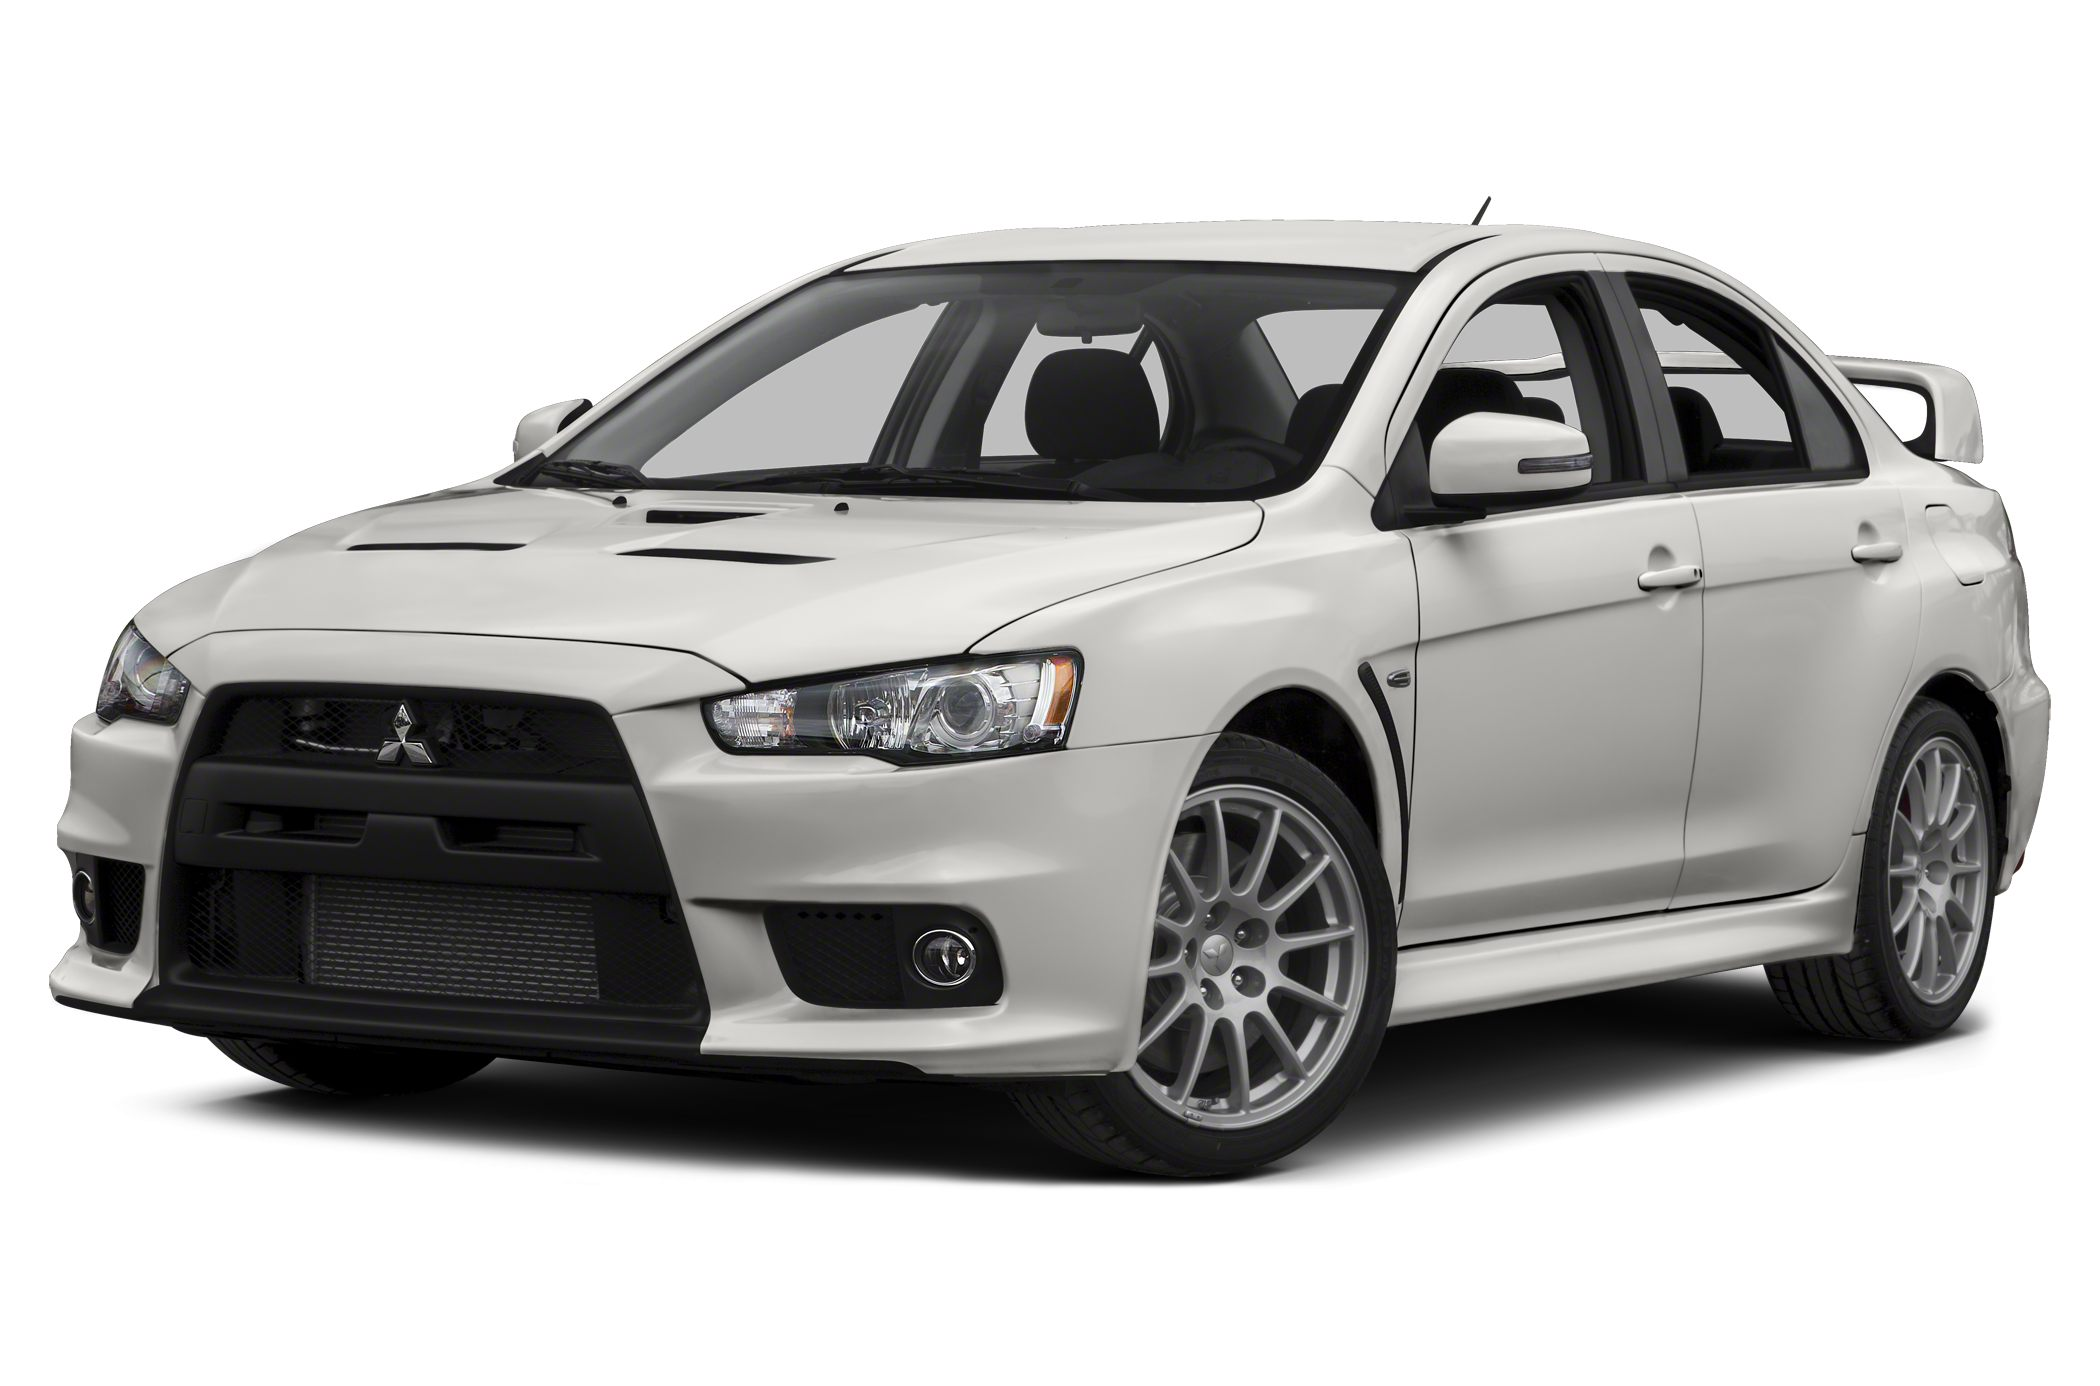 2015 Mitsubishi Lancer Evolution GSR Bluetooth This 2015 Mitsubishi Lancer Evolution GSR is with